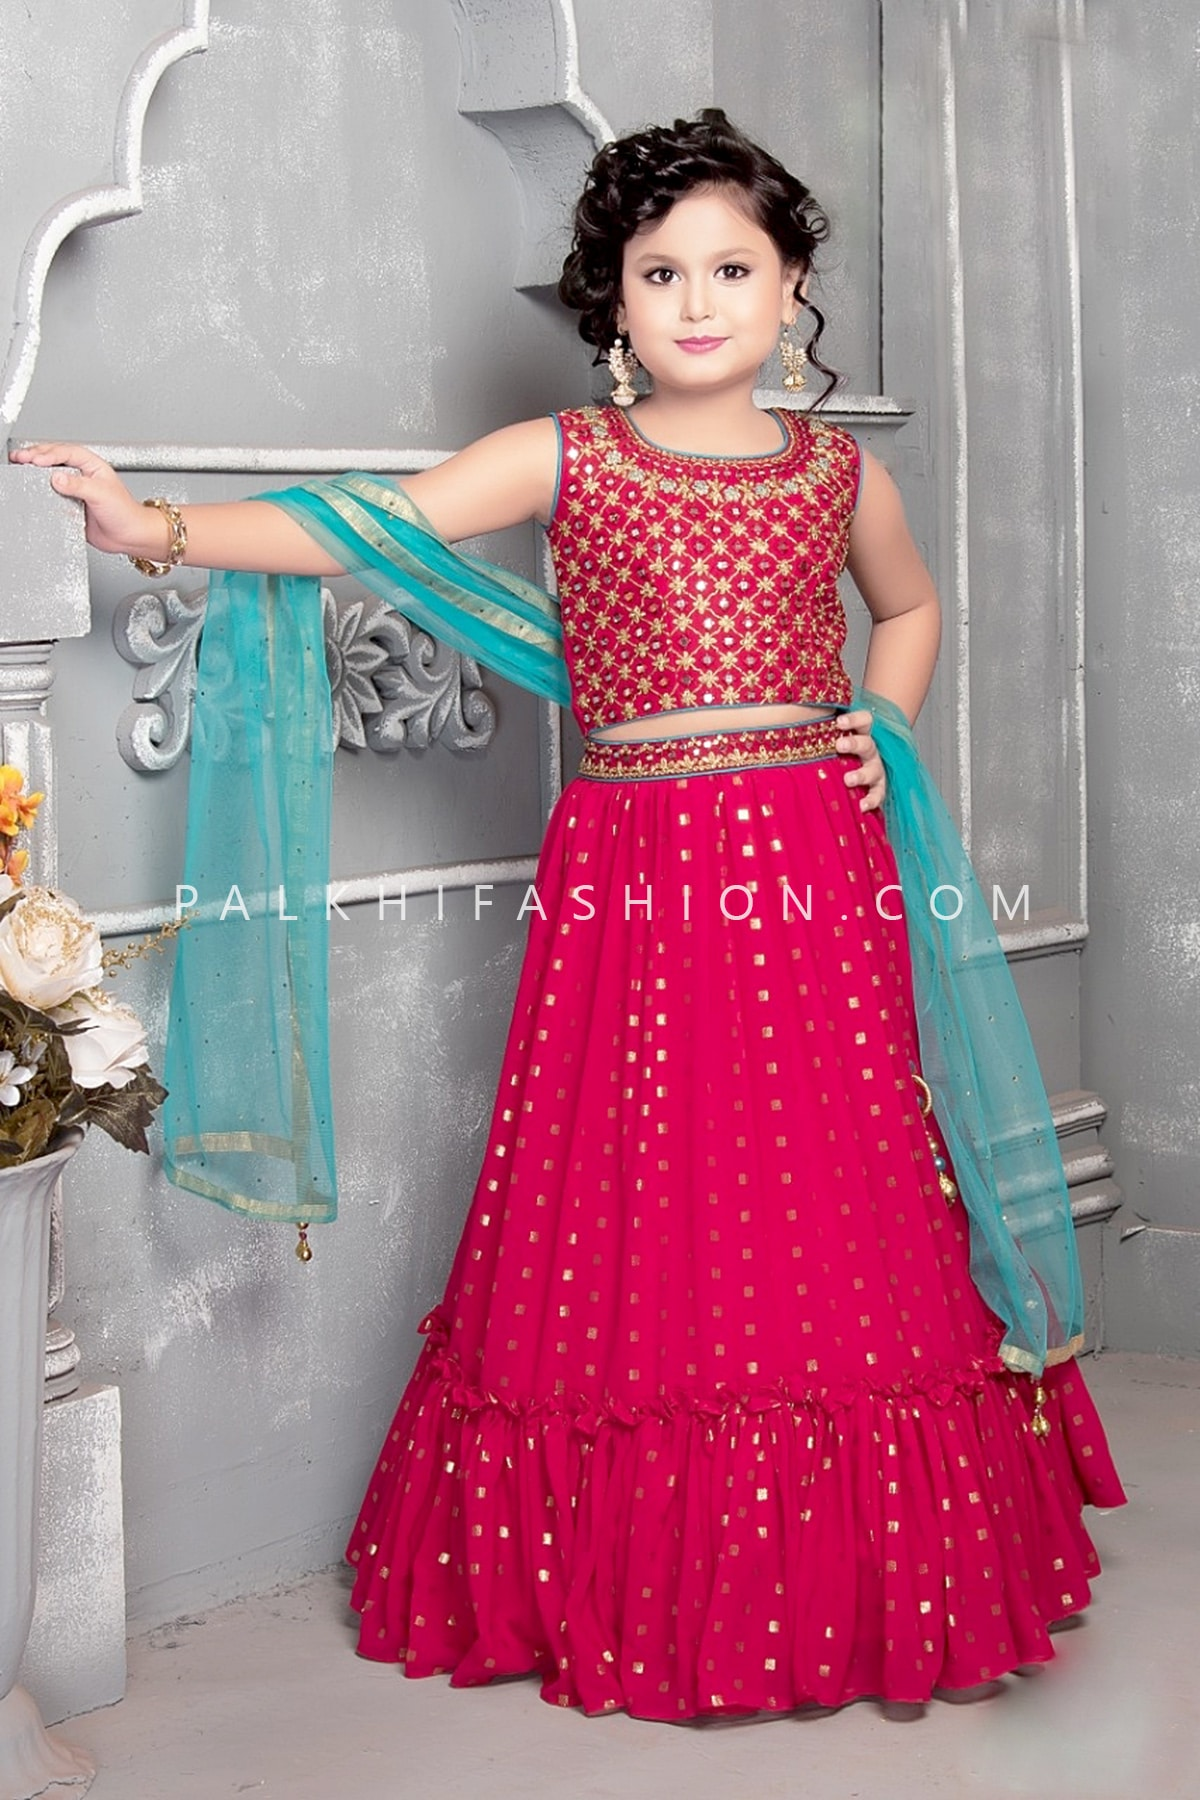 Rani Pink Girls Lehenga Set With Appealing Work-Palkhi Fashion